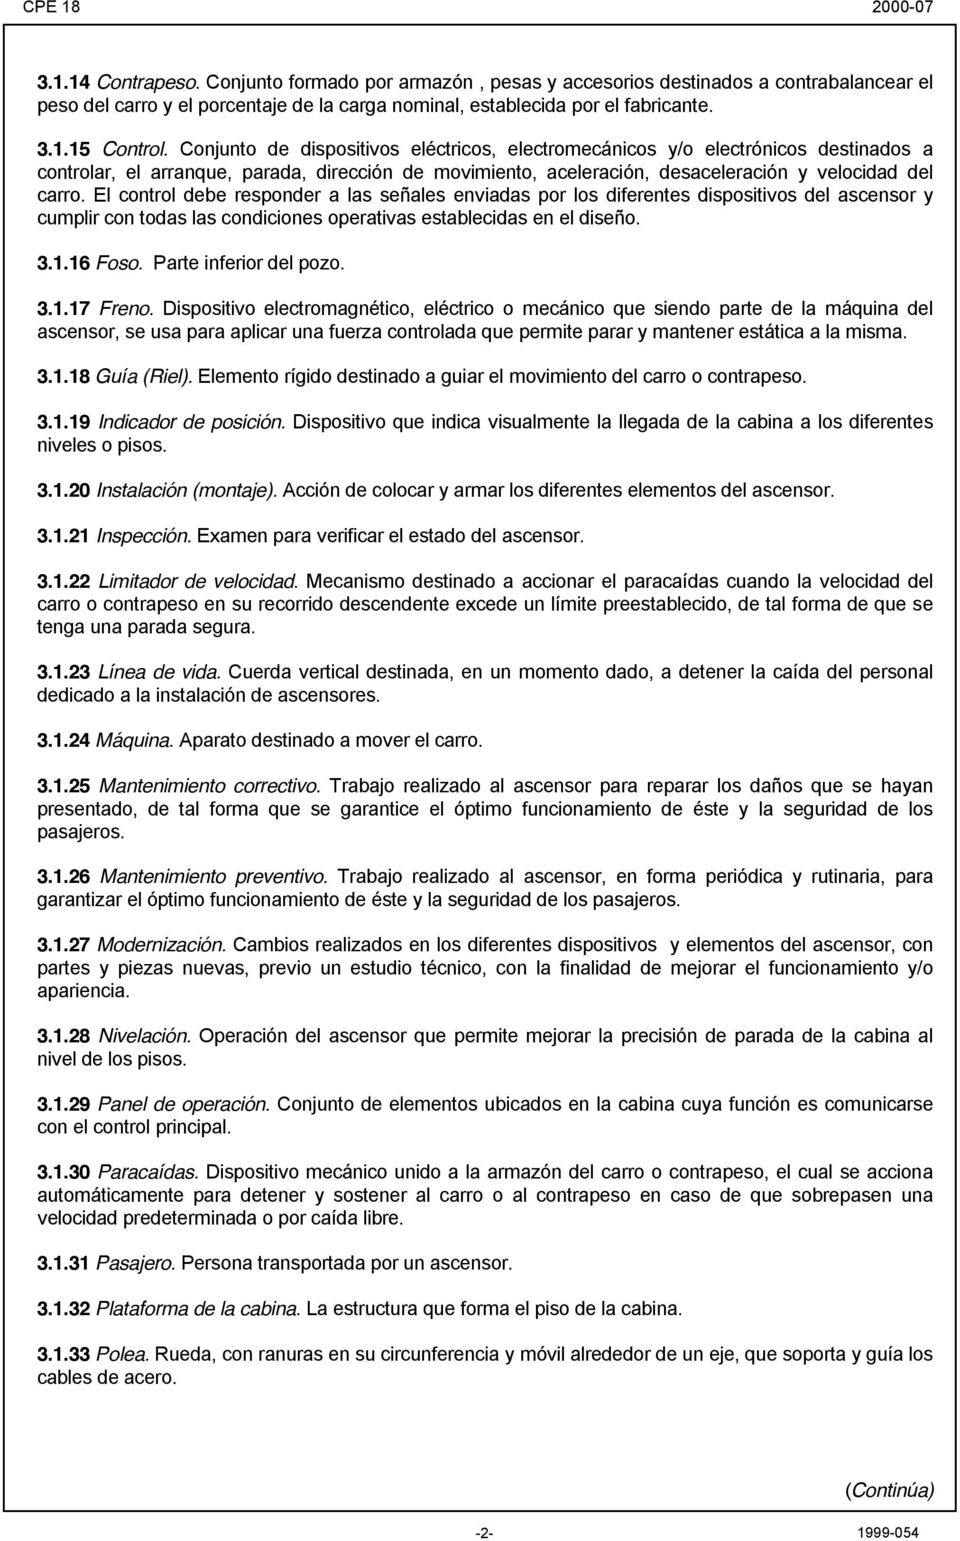 RepublicofEcuador EDICTOFGOVERNMENT± - PDF